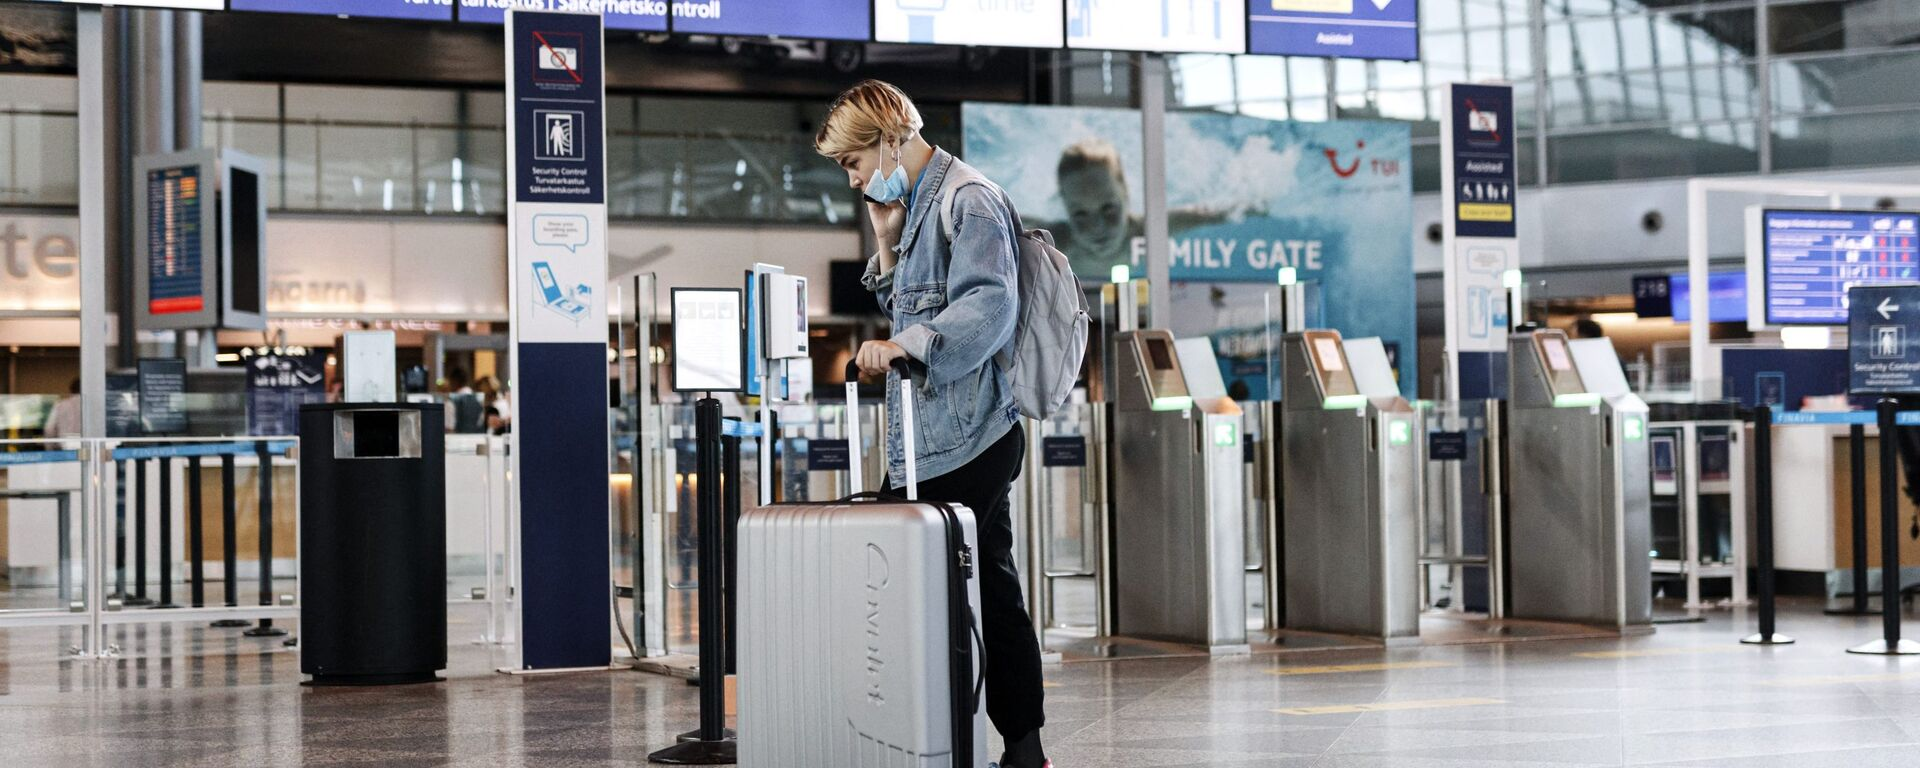 A passenger wears a face mask at the Helsinki-Vantaa airport in Vantaa, Finland on July 13, 2020 as Finnish Government eased COVID-19 pandemic in and out travel restrictions with several EU countries. - Sputnik International, 1920